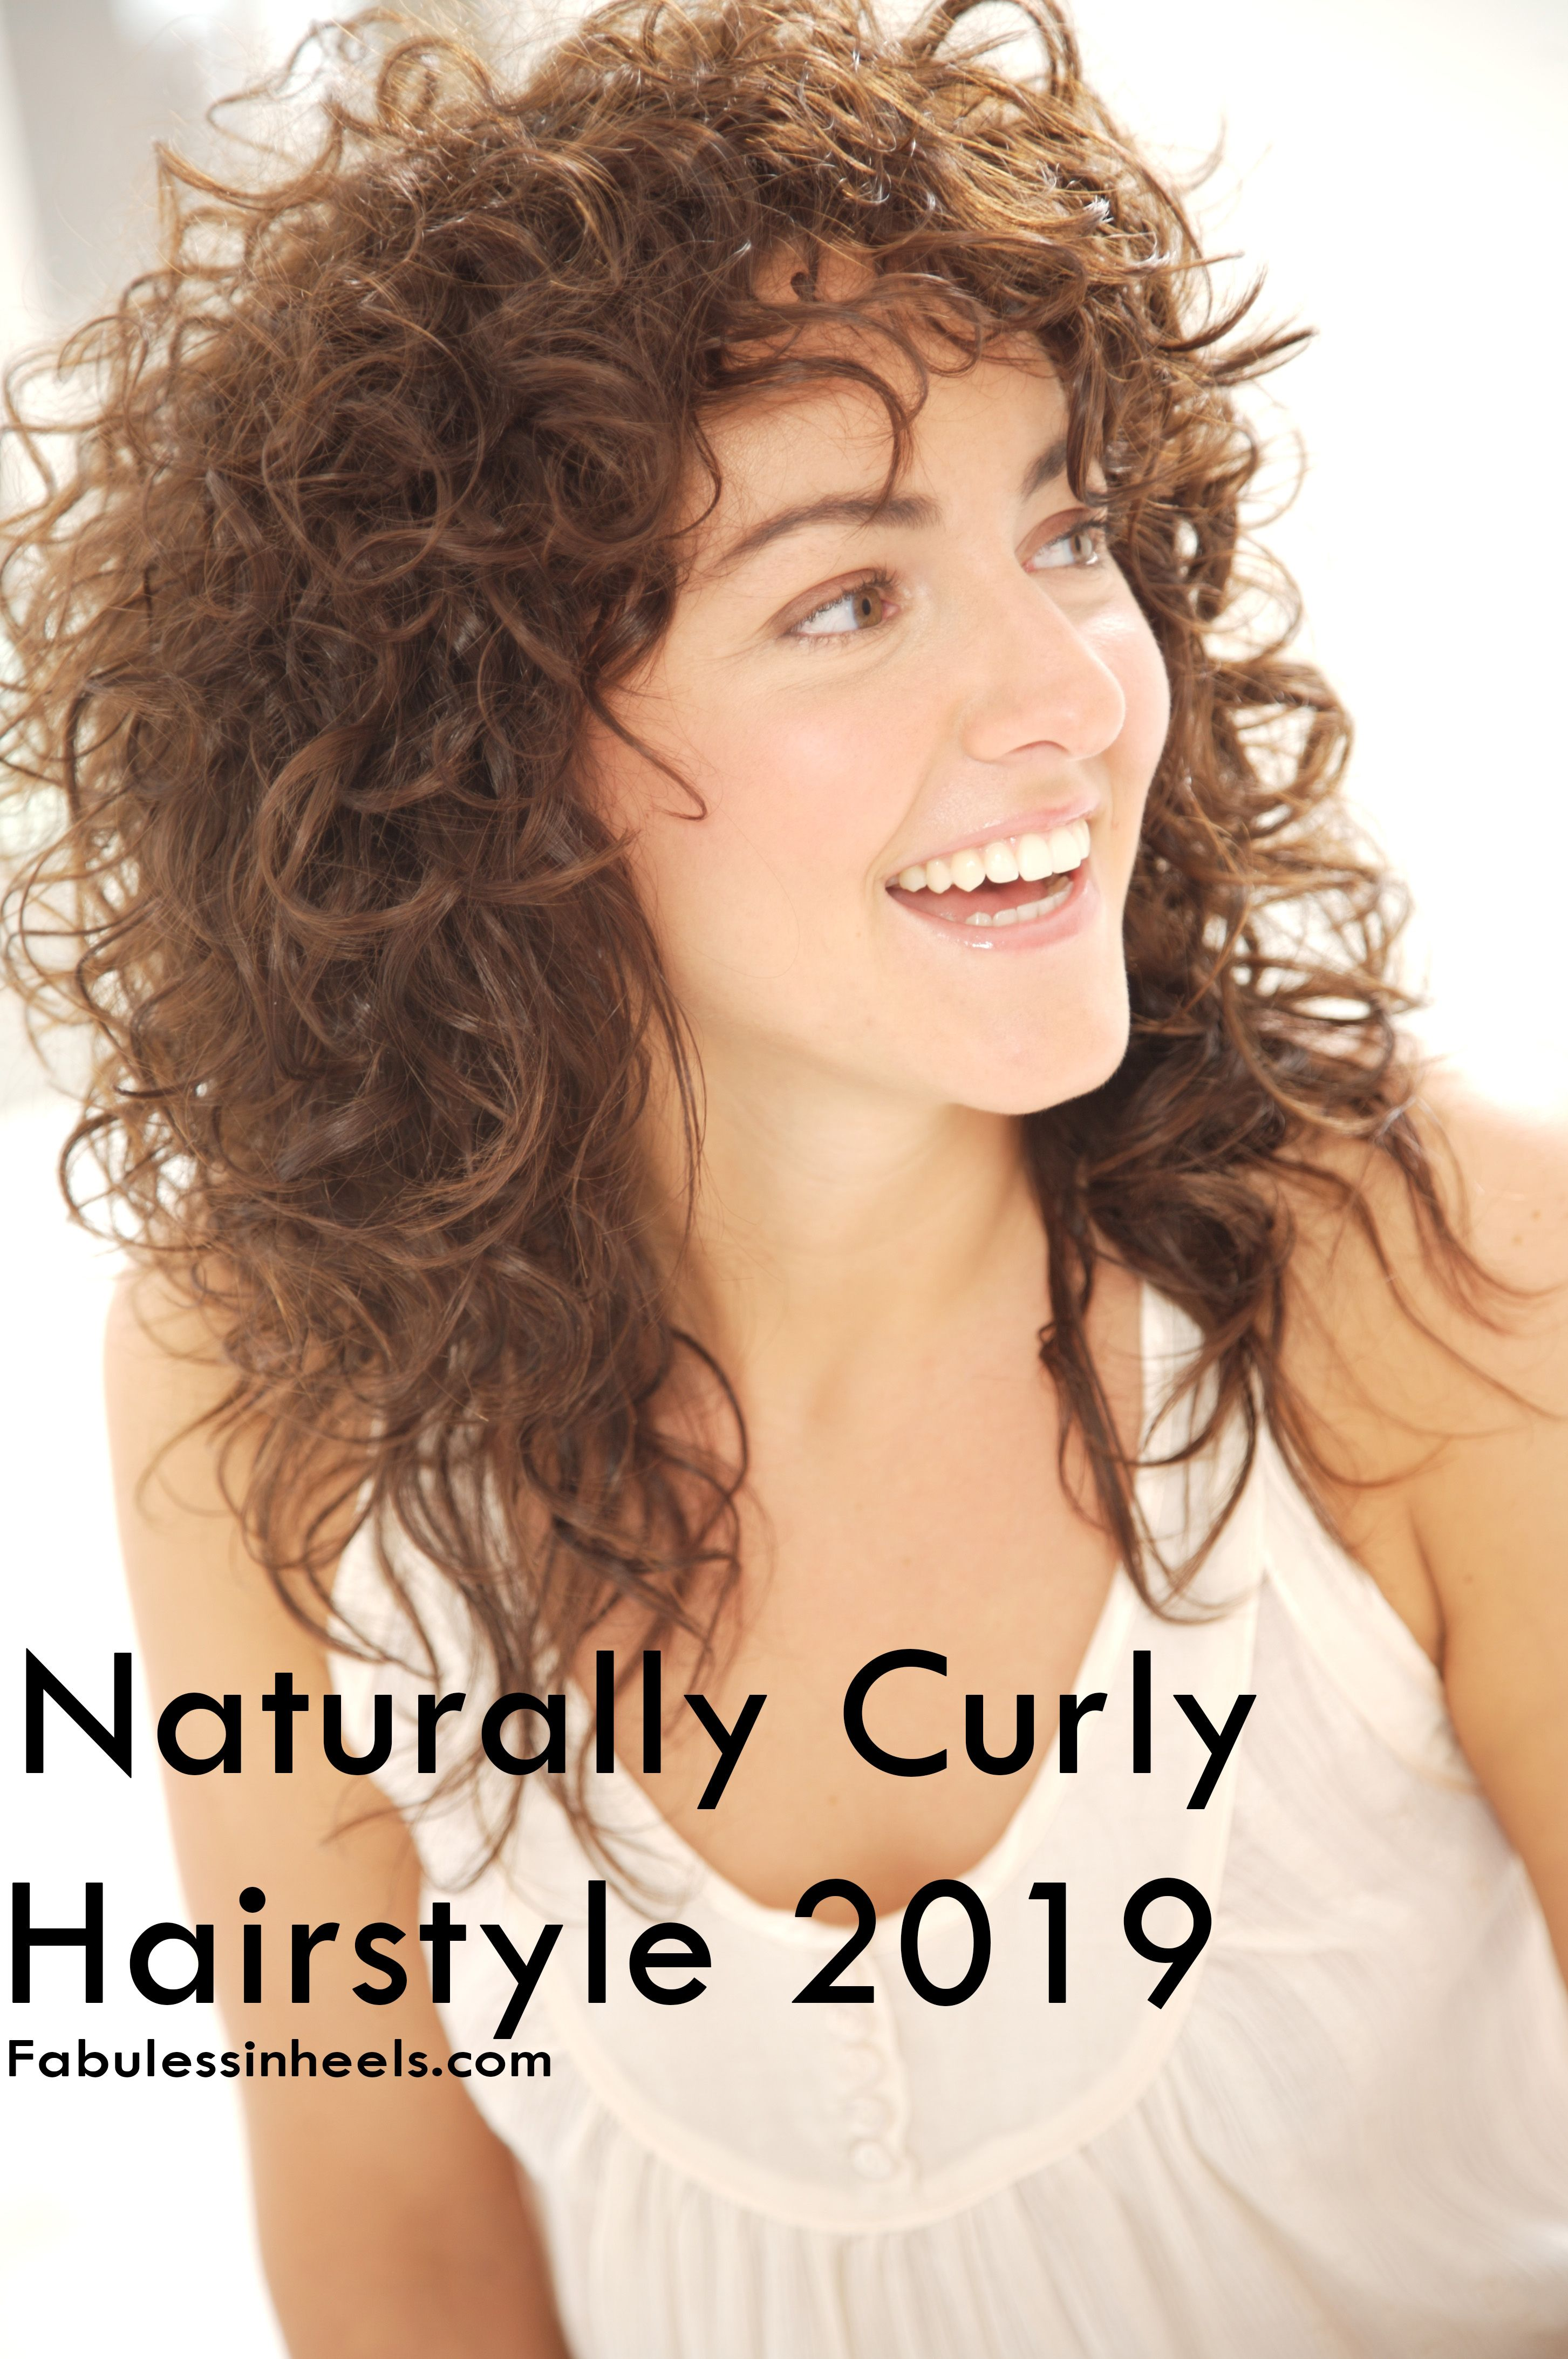 Naturally Curly Hair 2019 For Womens With Medium Length Hairstyle Hairstyleforwomen Shoulder Length Curly Hair Curly Hair Styles Naturally Curly Hair Styles